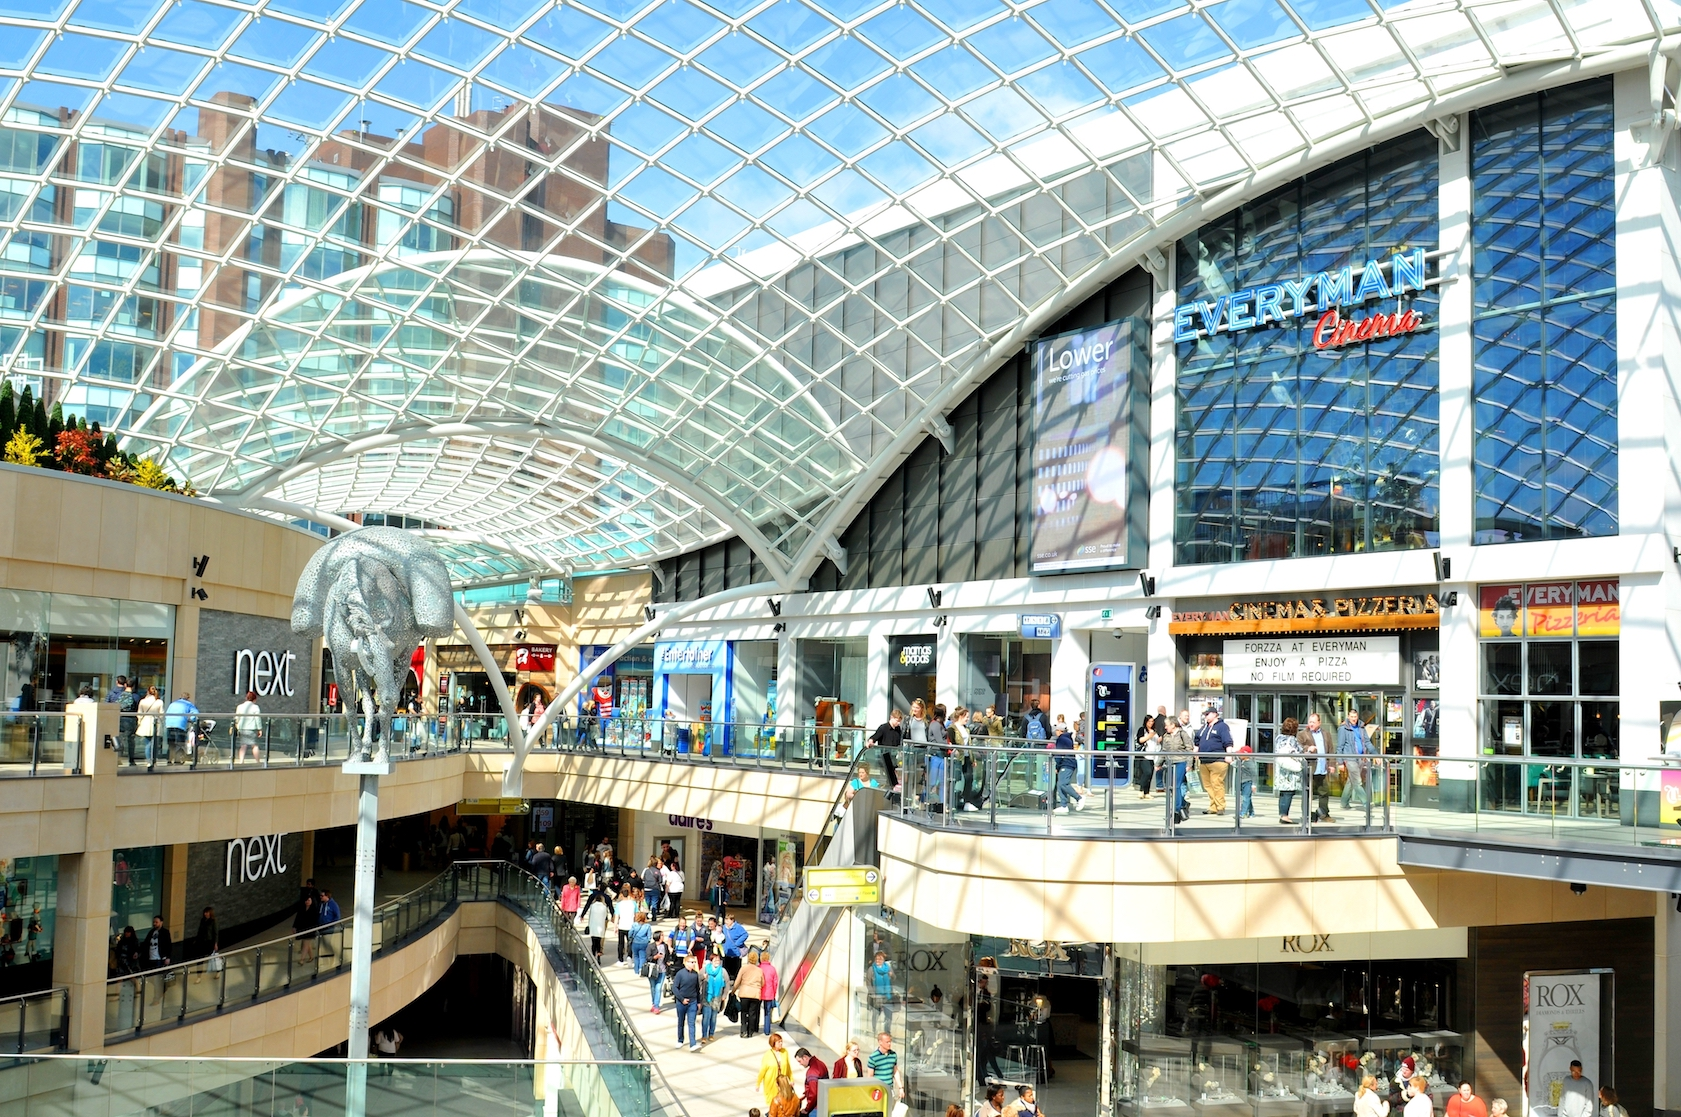 Trinity Leeds Mall in Leeds, England, filled with shoppers on a sunny day.